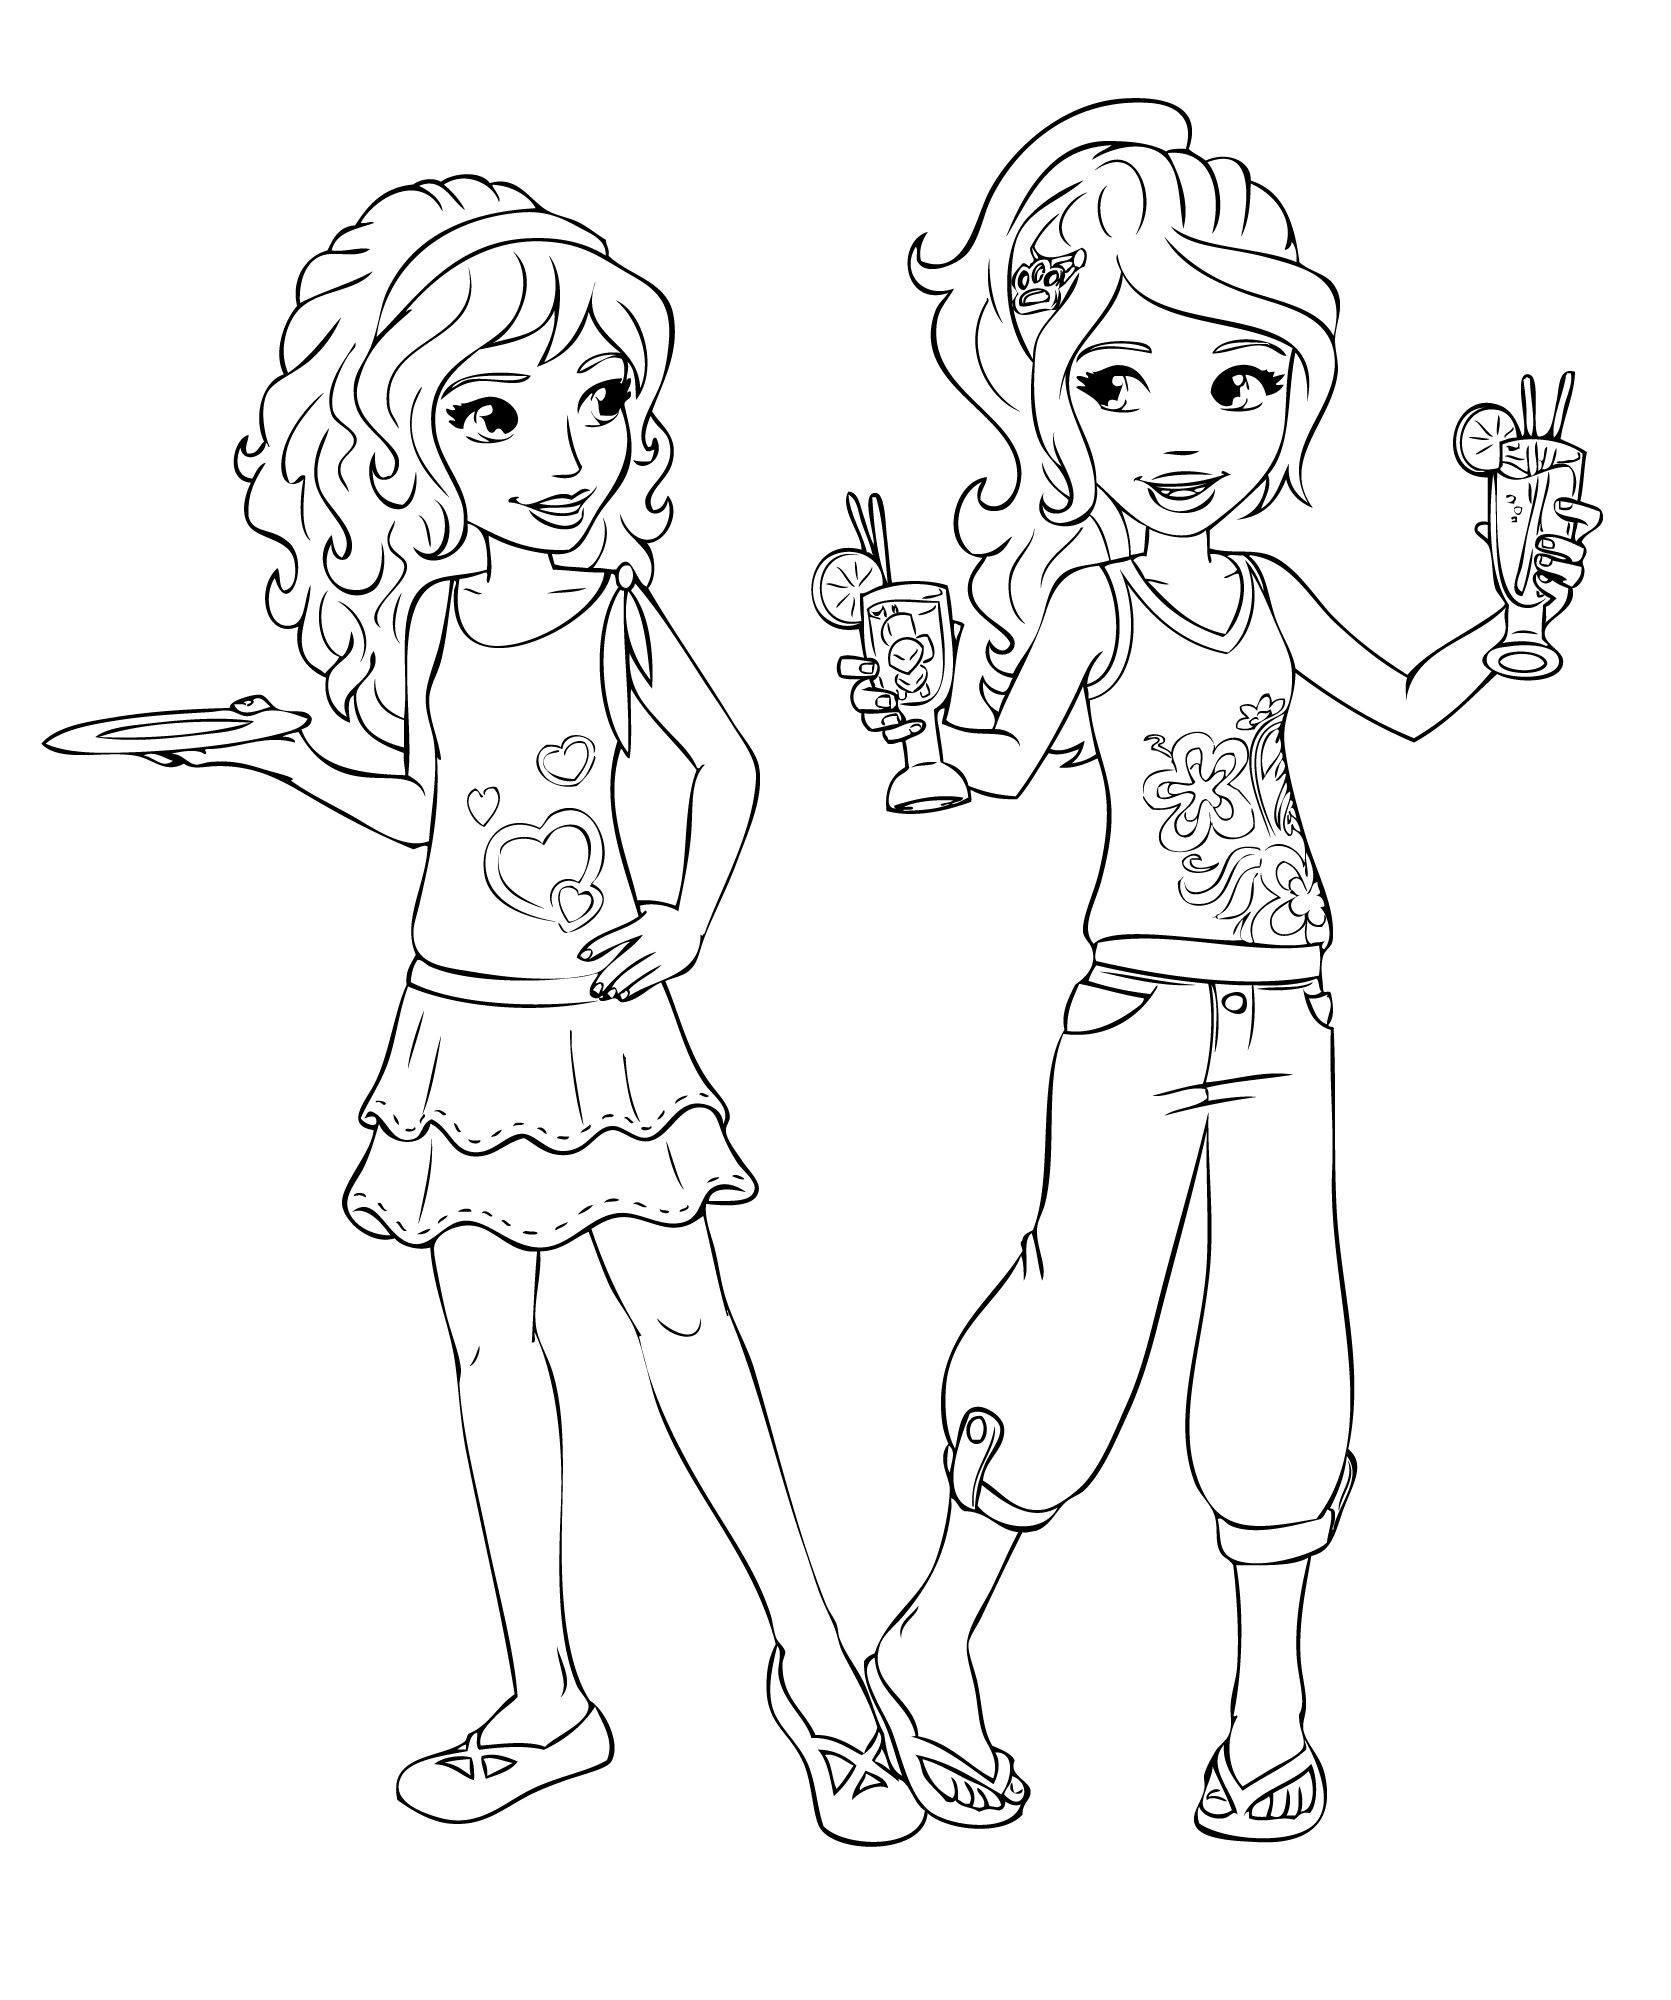 lego friends coloring pages tagged with best friends coloring ...